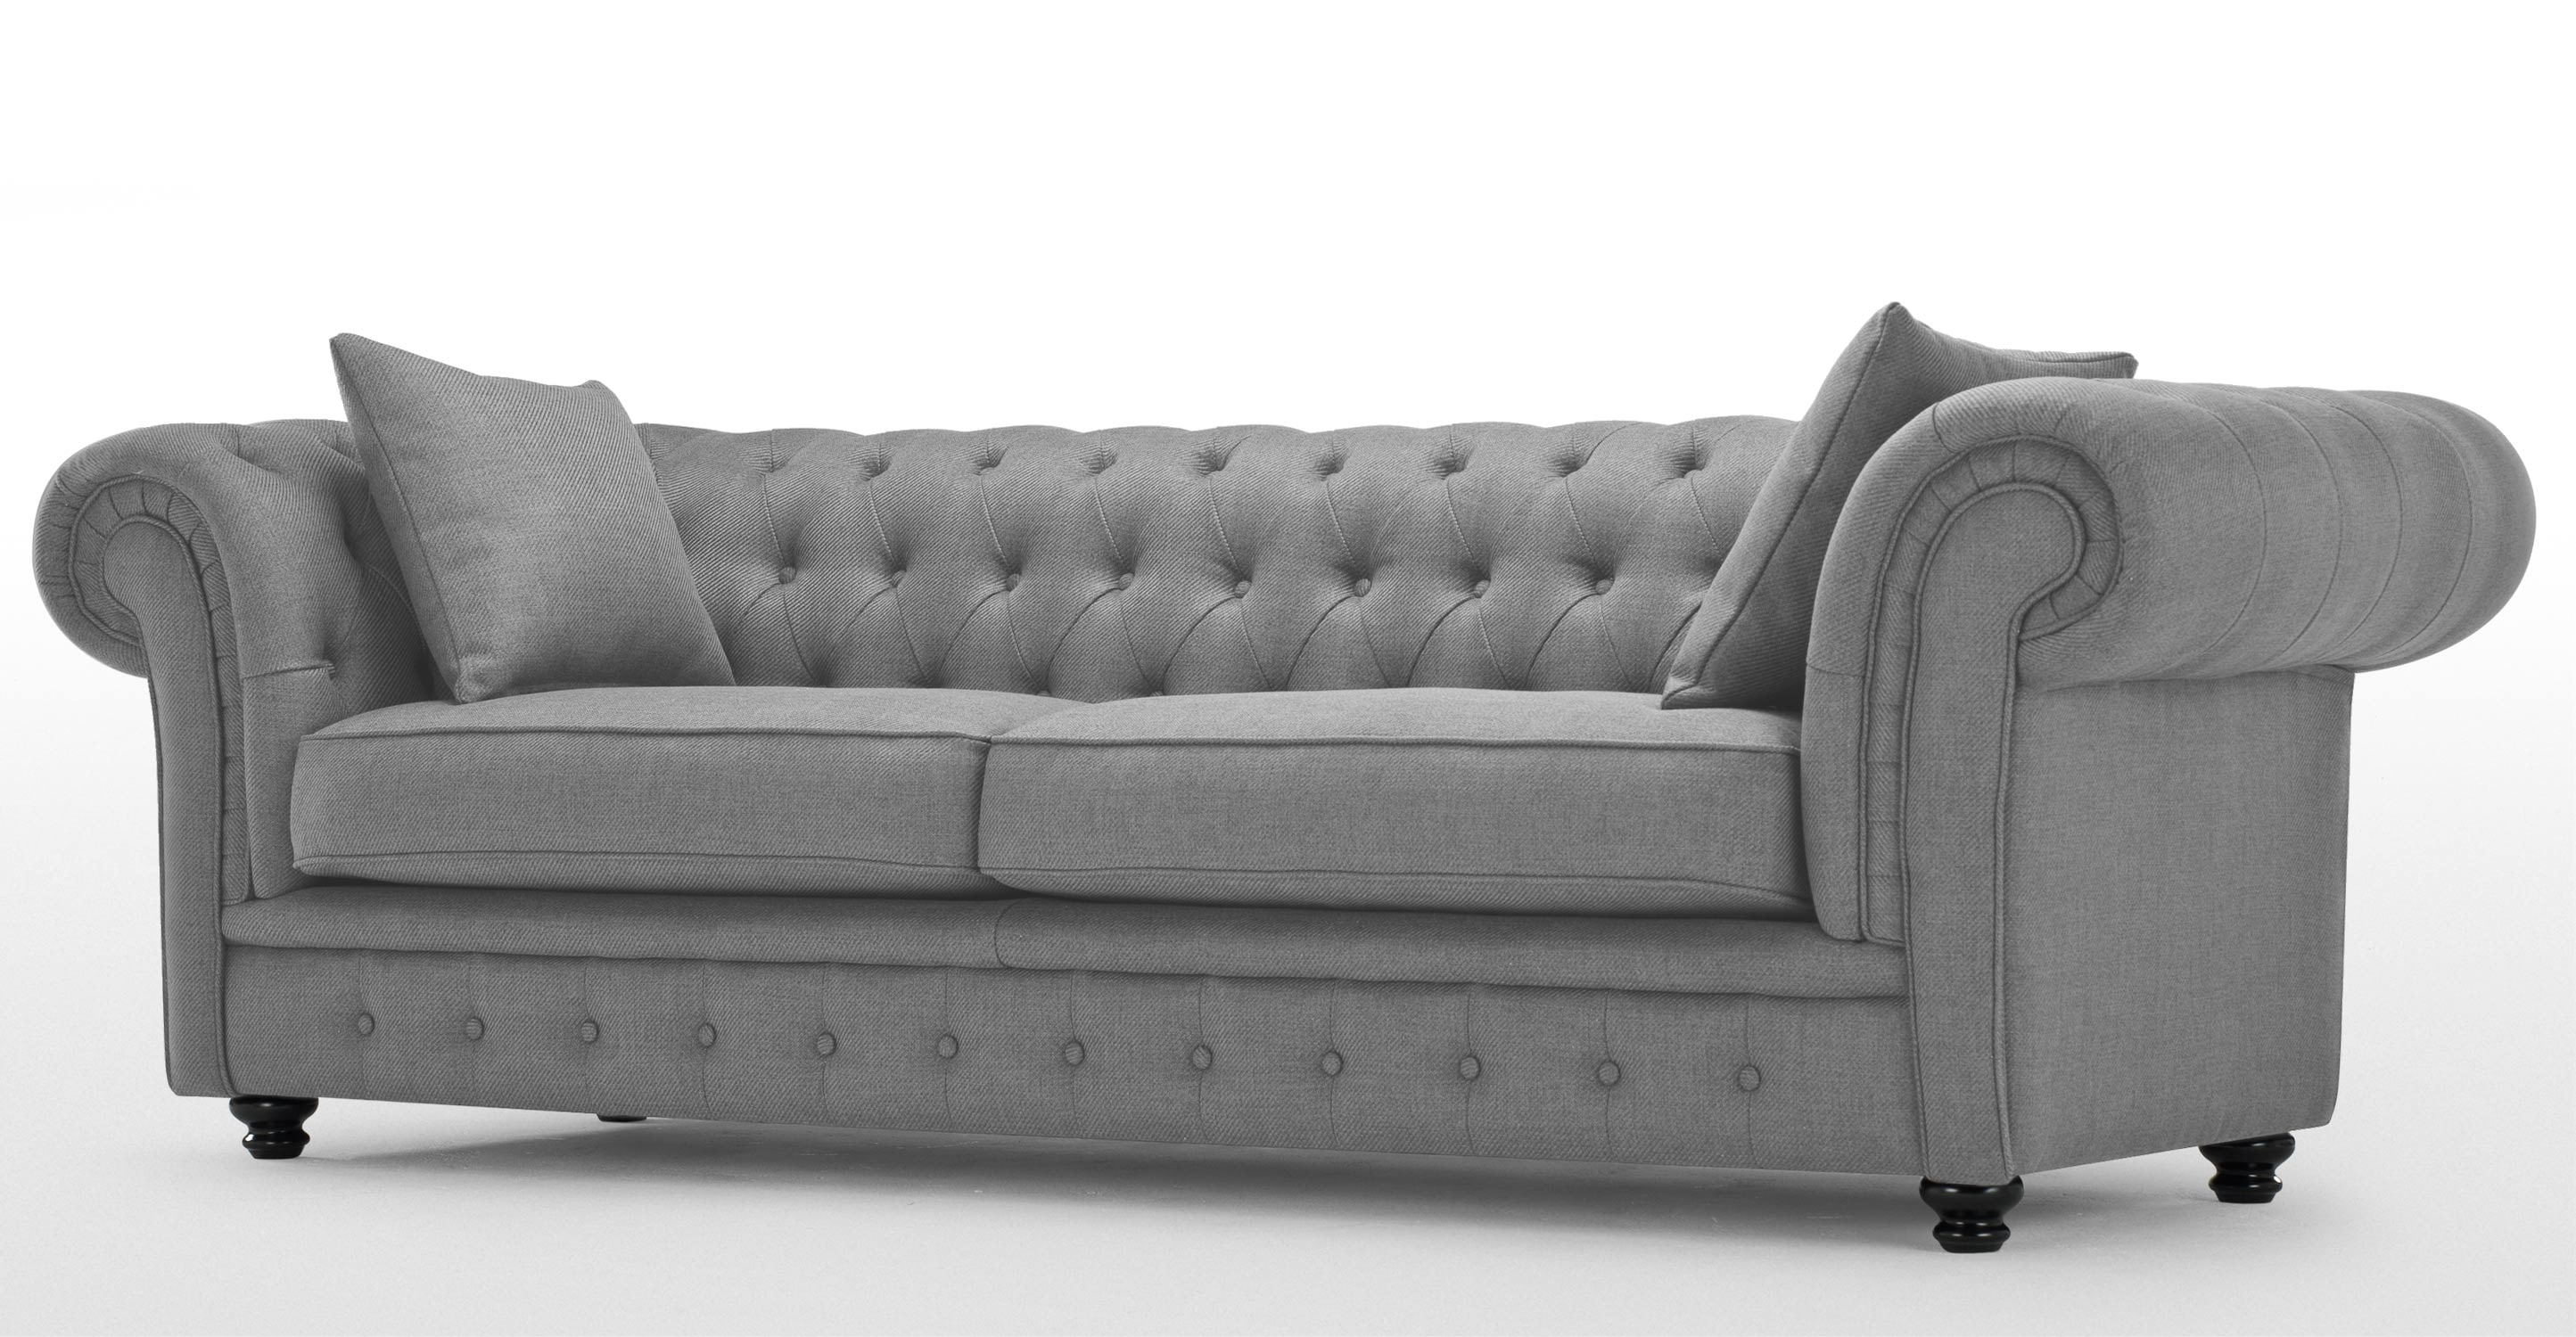 Branagh 3 Seater Grey Chesterfield Sofa Made Inside Chesterfield Sofas (Image 1 of 15)